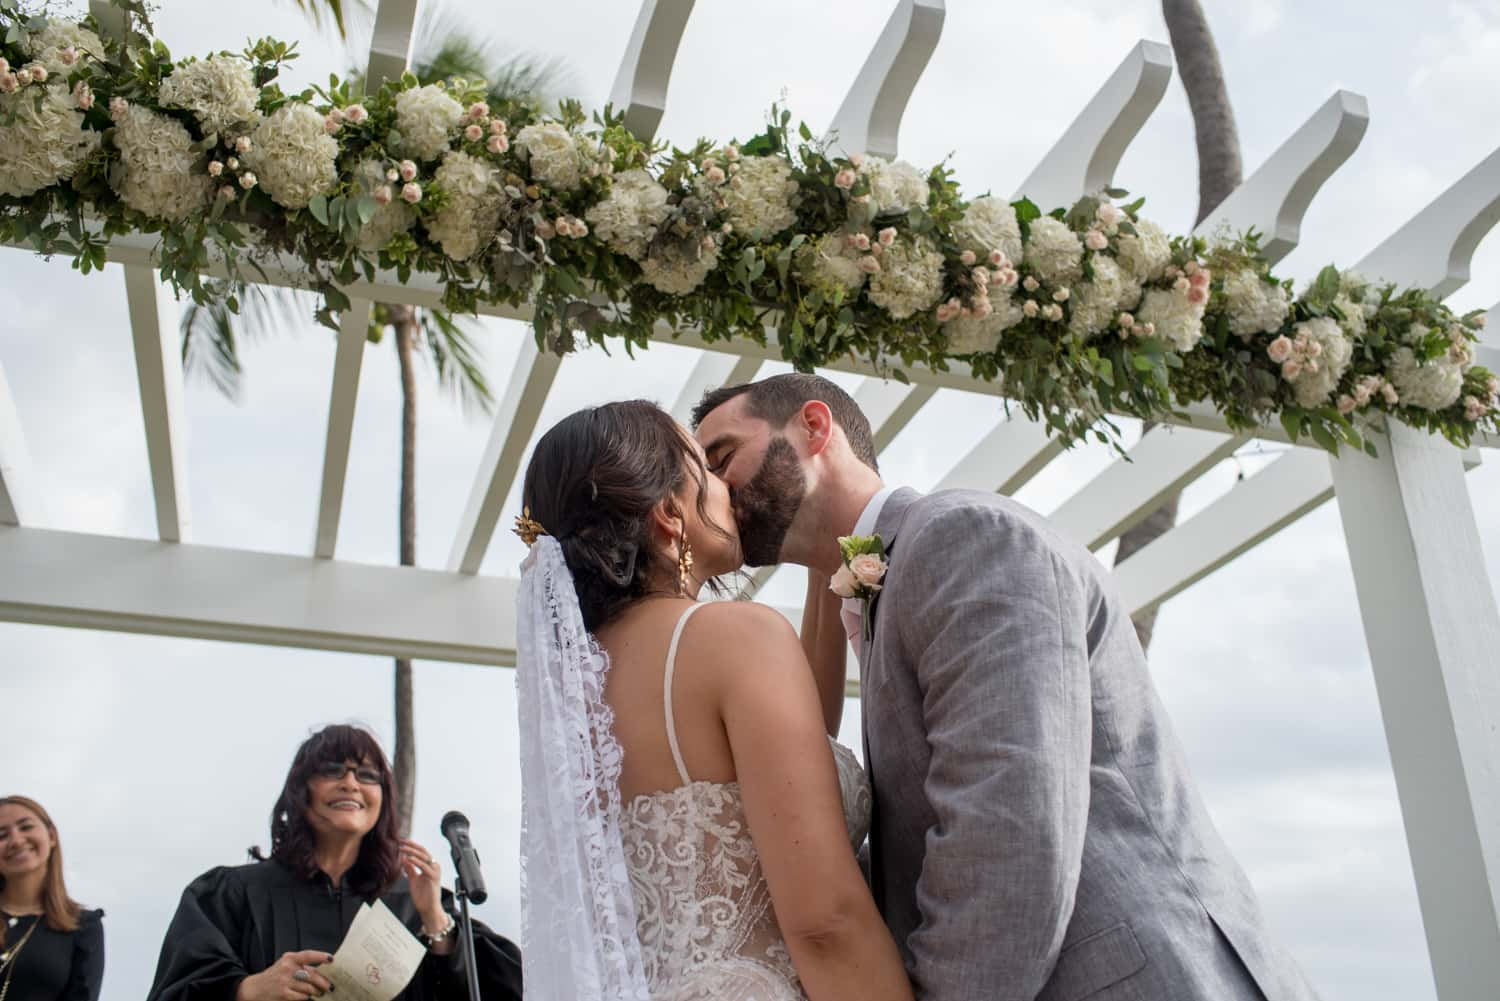 Bride and groom kiss under floral arch